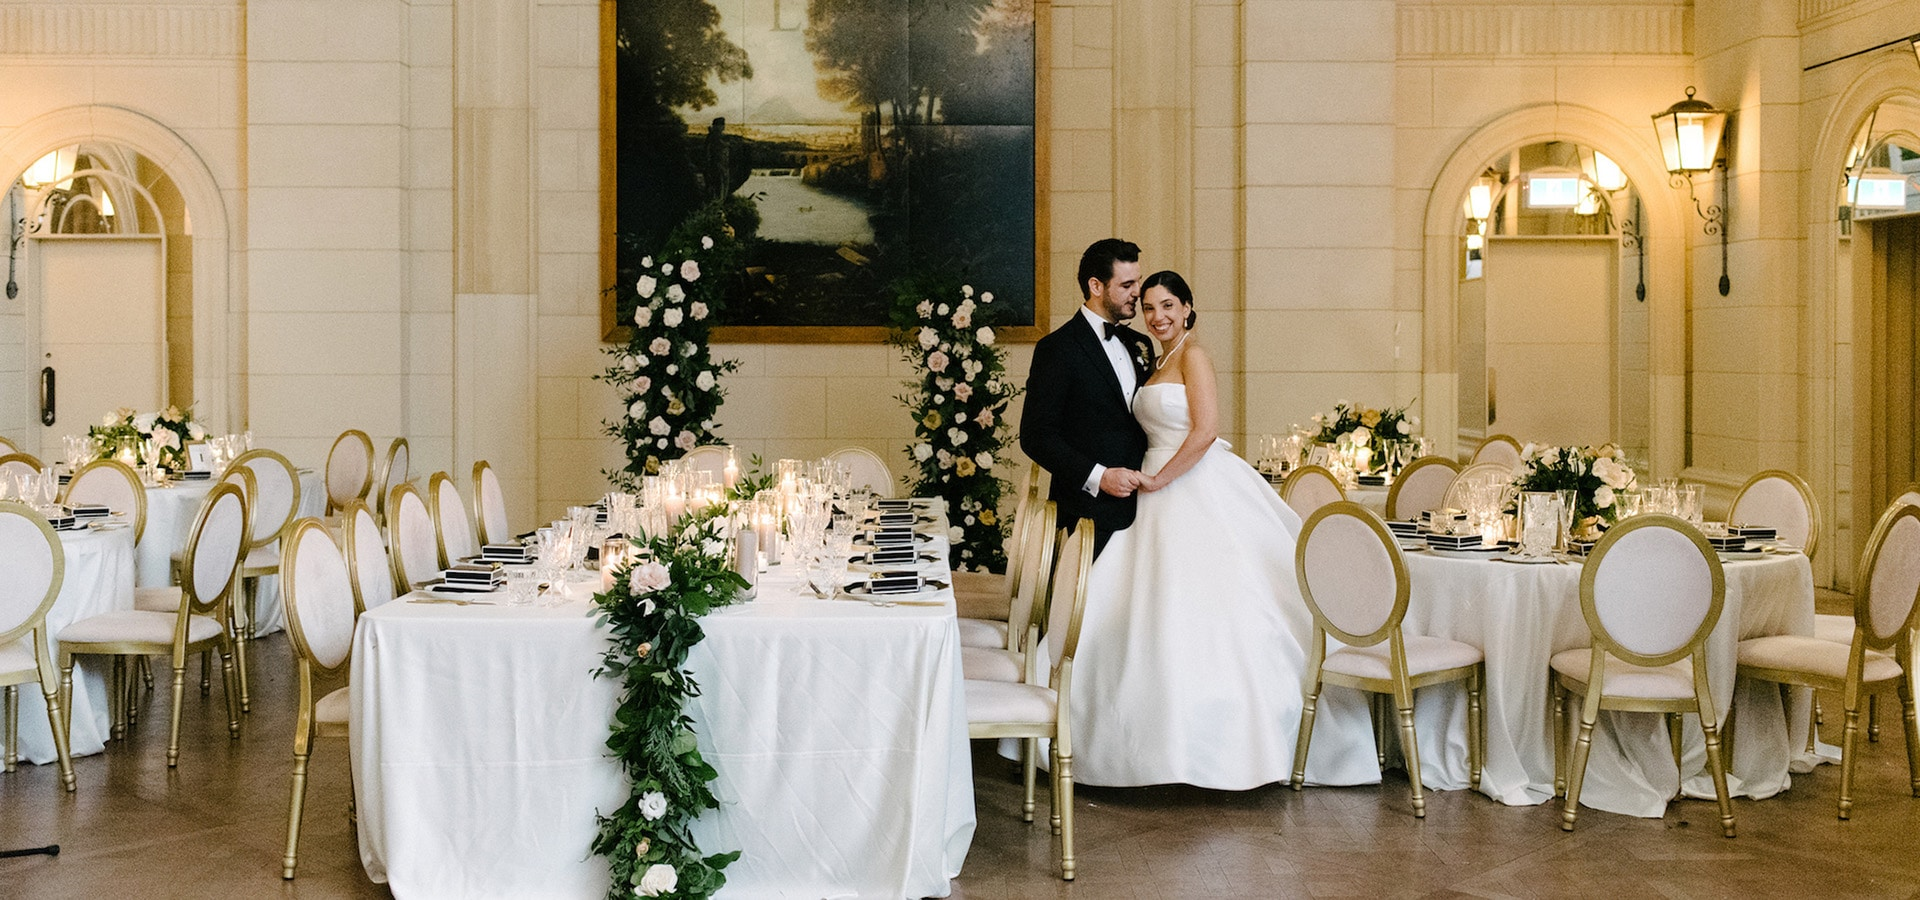 Hero image for Dina and Chris' Elegant Wedding at the Windsor Arms Hotel